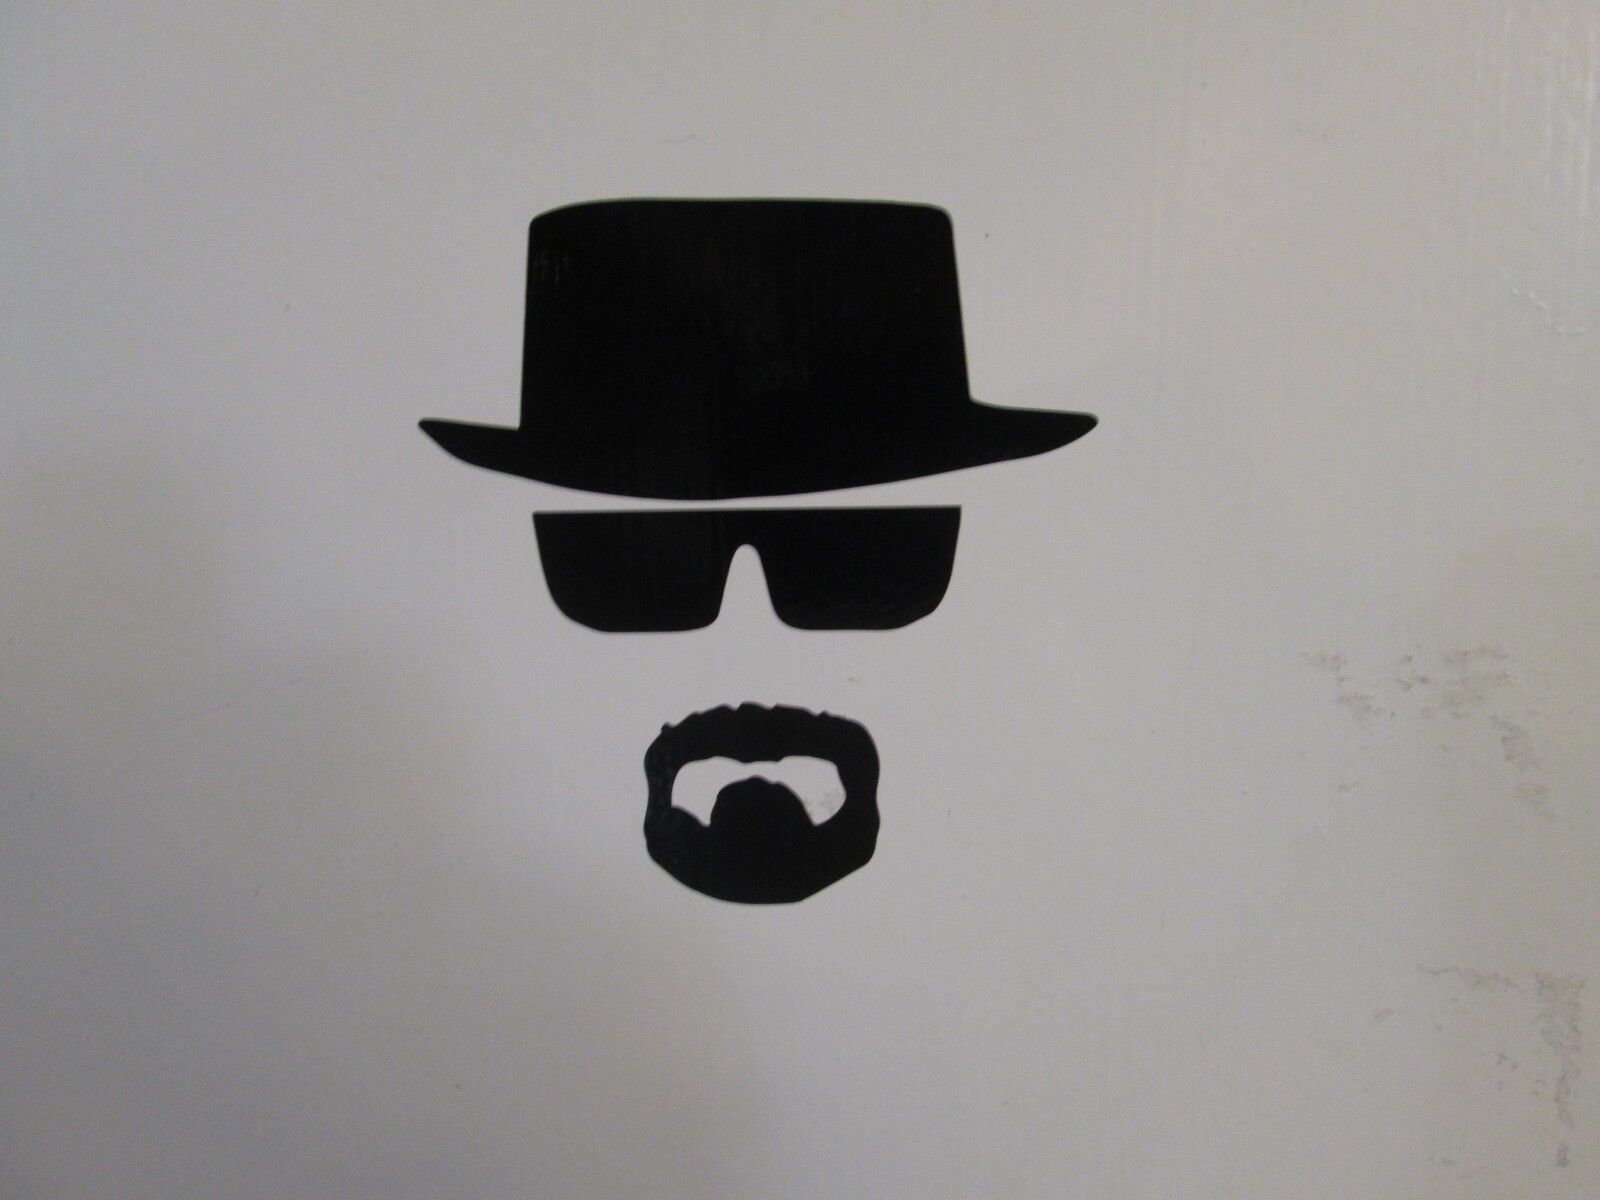 Home Decoration - Heisenberg Breaking Bad vinyl decal sticker, many different colors/sizes